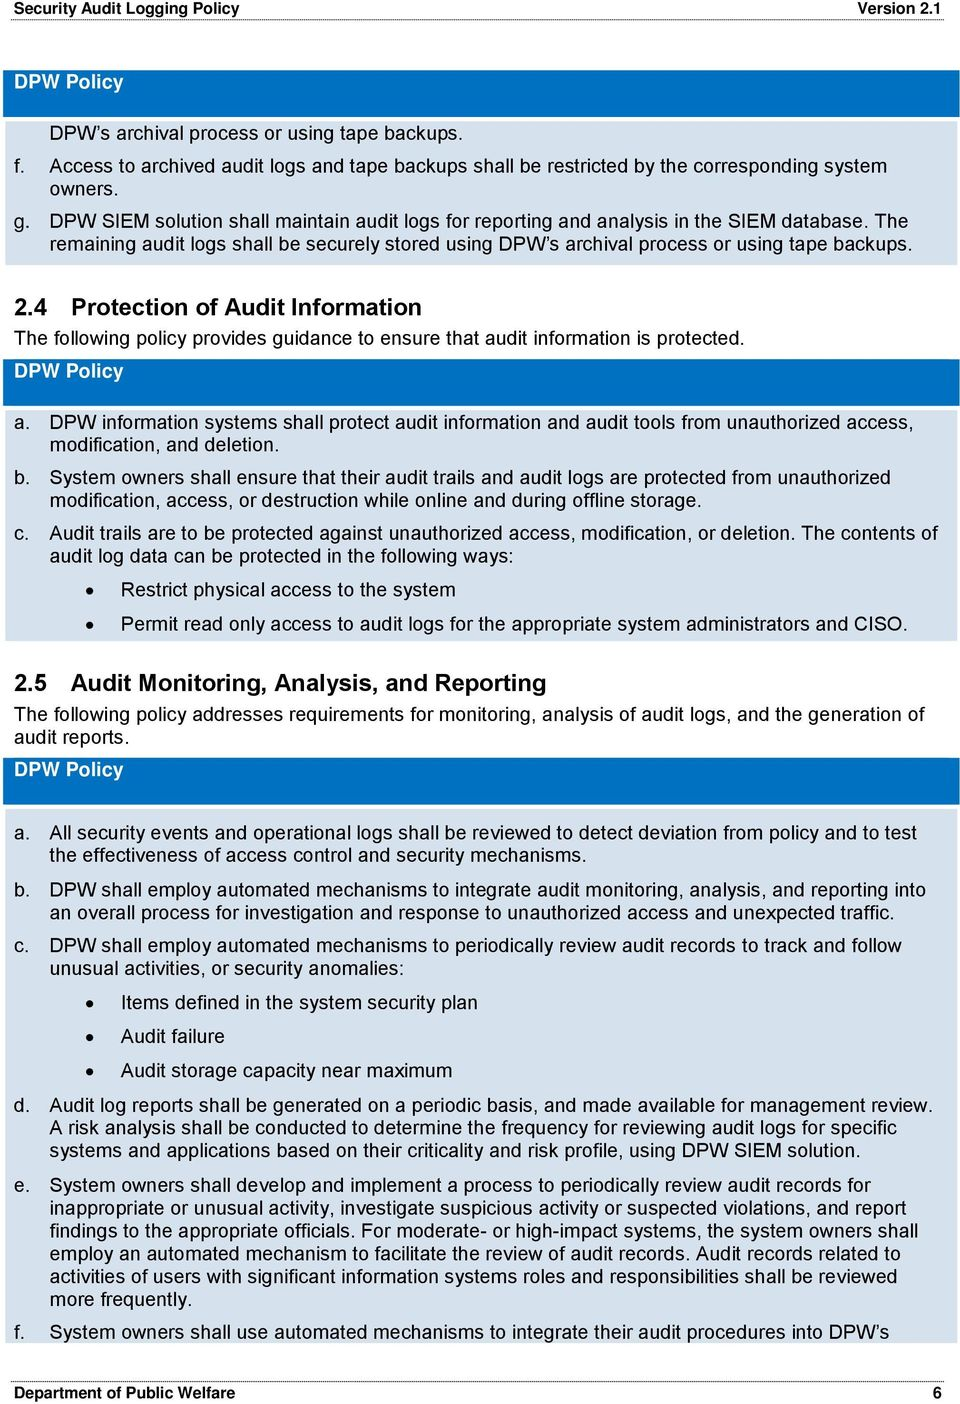 4 Protection of Audit Information The following policy provides guidance to ensure that au